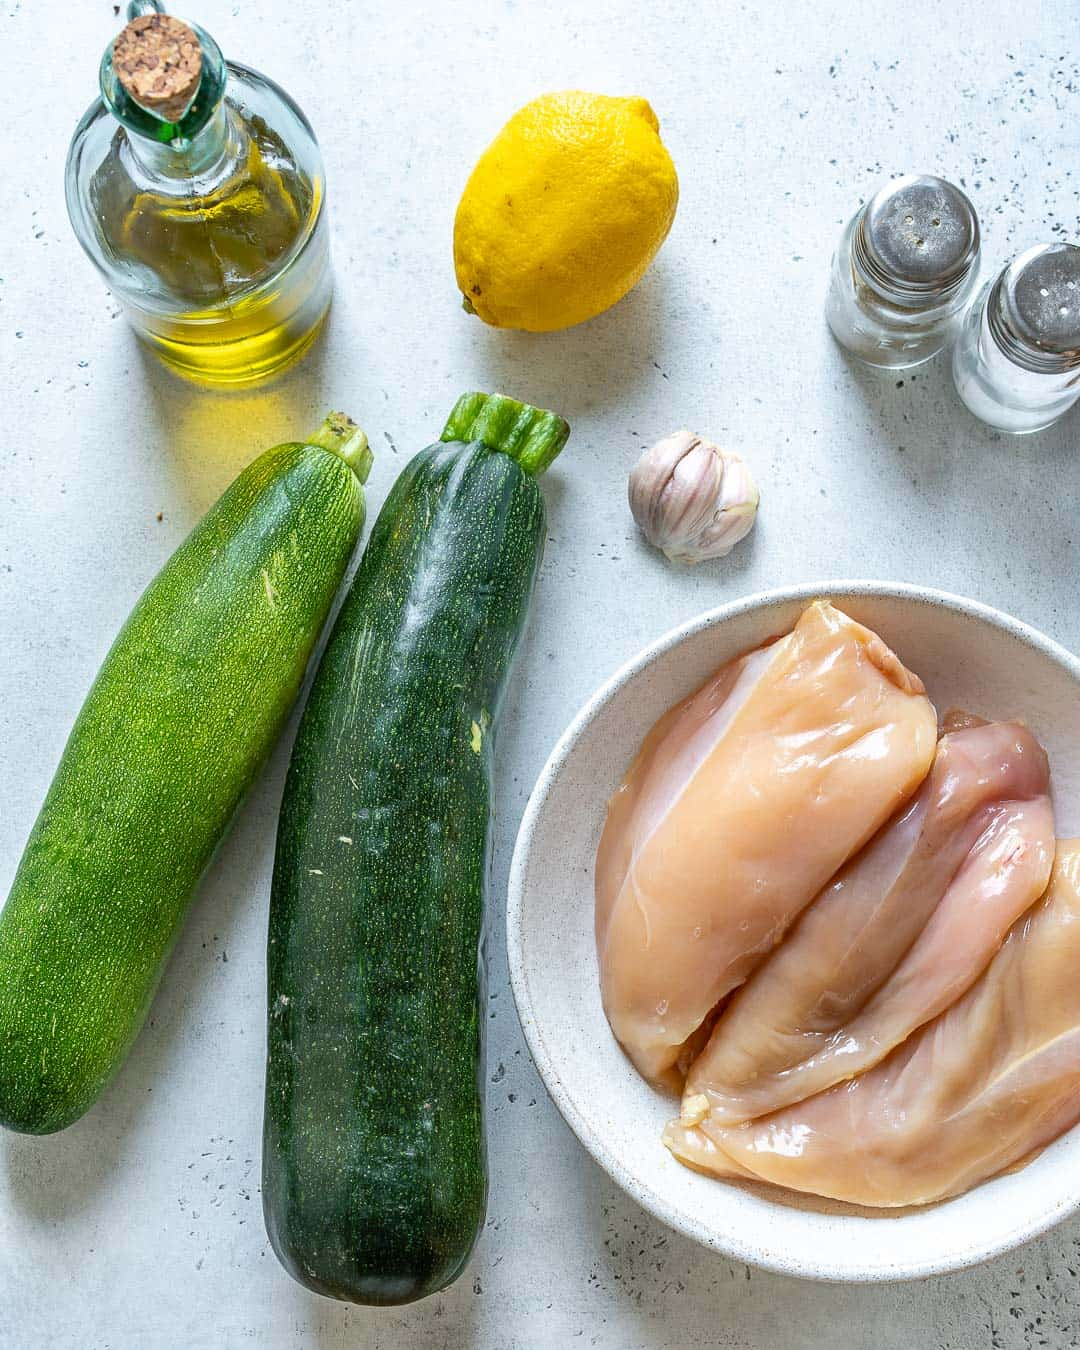 ingredients for the grilled chicken